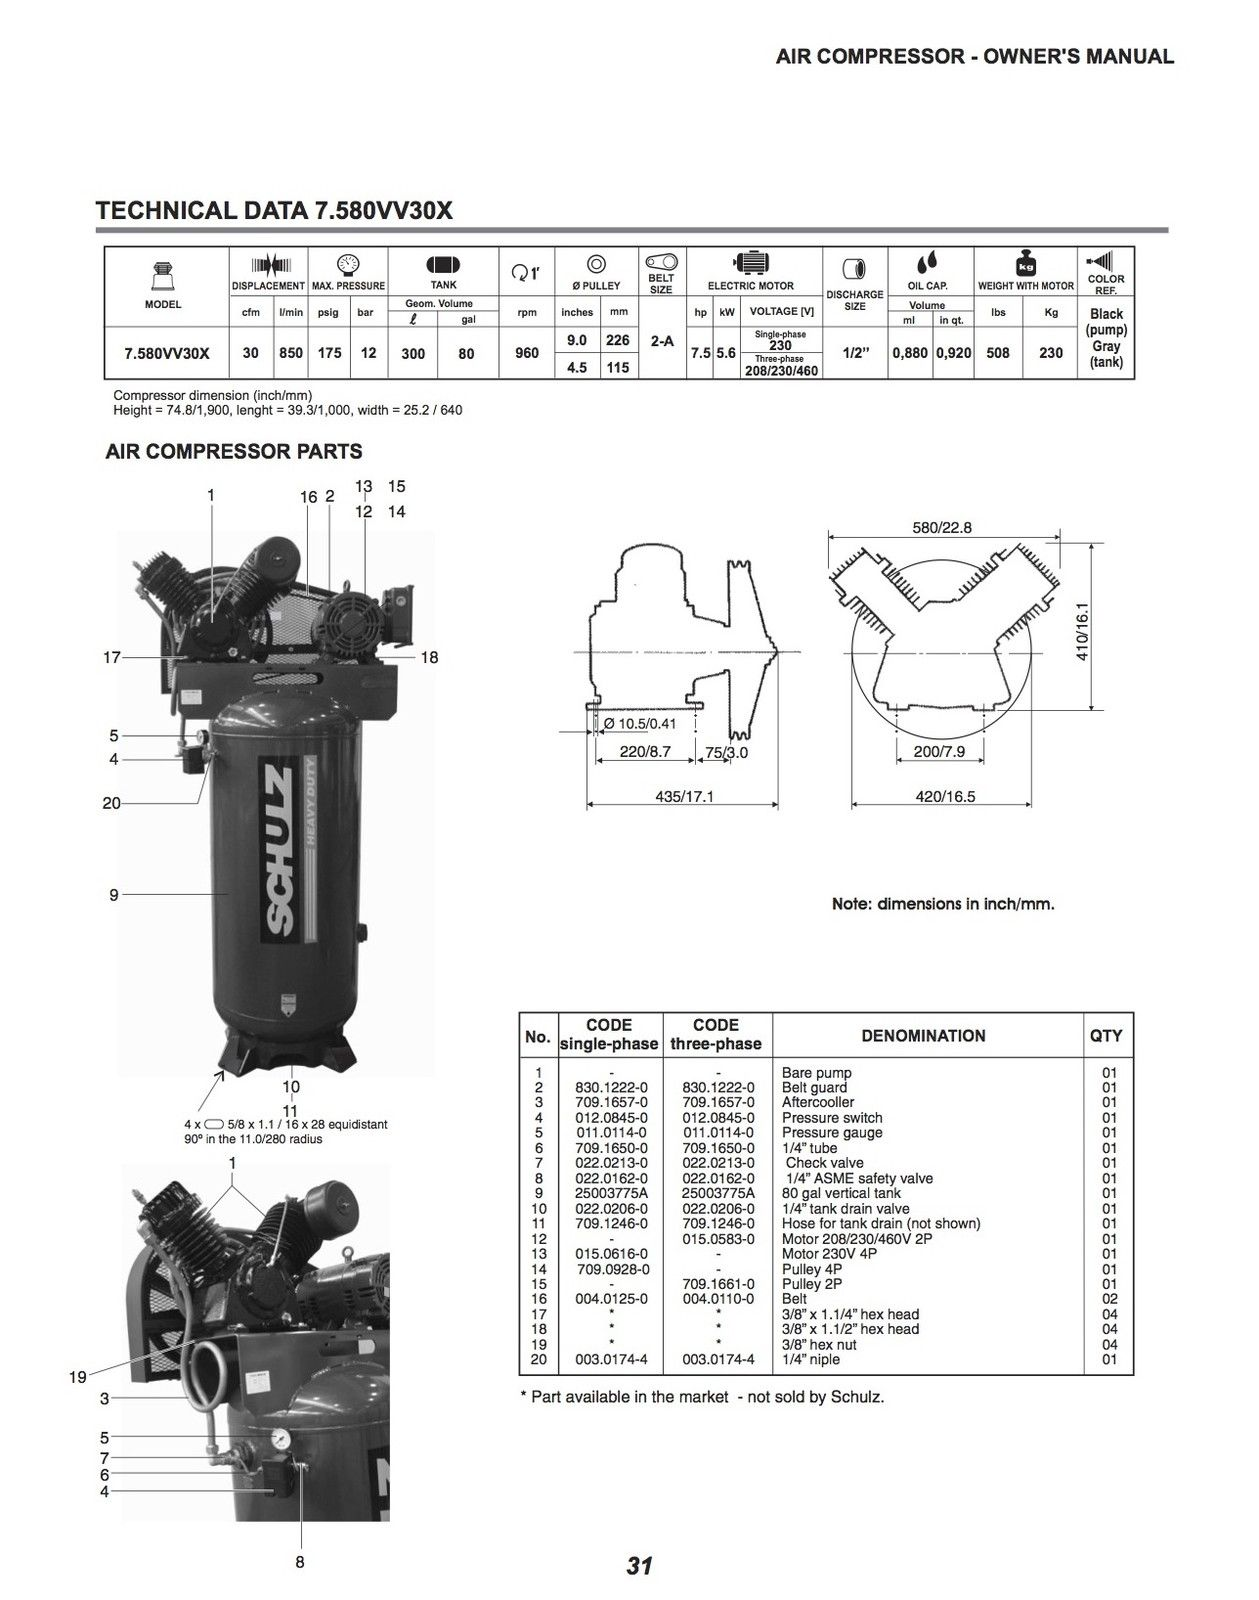 Schulz V-Series 7.5-HP 80-Gallon Two-Stage Air Compressor 1 PH or 3 on wiring diagram for door, wiring diagram for lighting, wiring diagram for fan, wiring diagram for power tools, wiring diagram for car, wiring diagram for tractor, wiring diagram for relay, wiring diagram for air, wiring diagram for accessories, wiring diagram for evaporator, wiring diagram for pressure washer, wiring diagram for grinder,